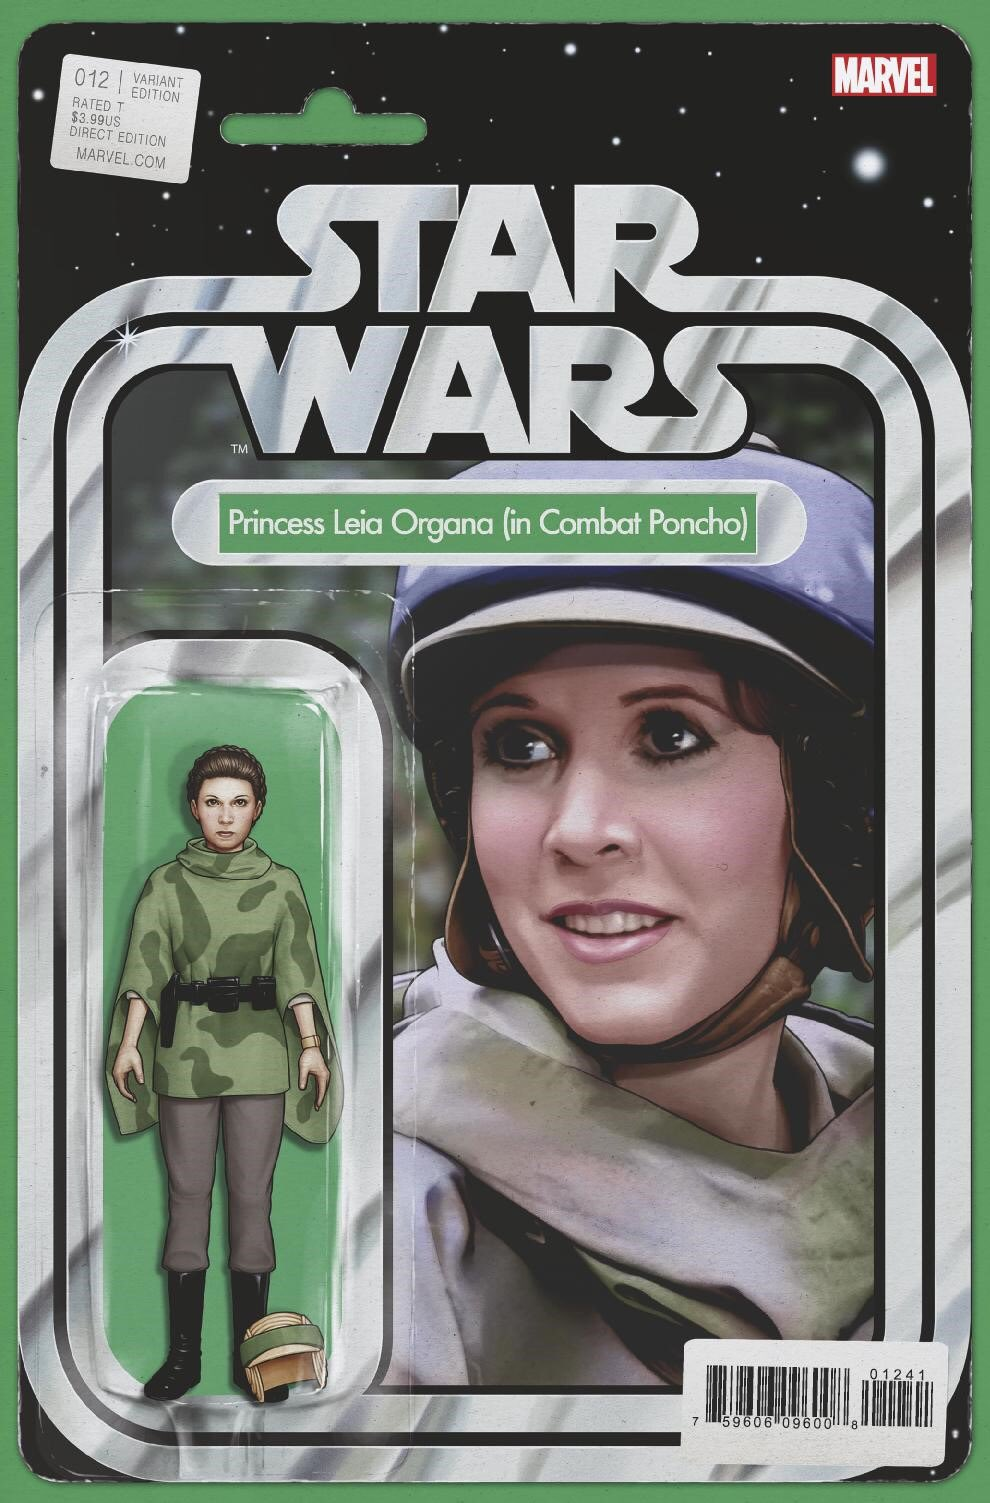 "Star Wars #12 (""Princess Leia Organa in Combat Poncho"" Action Figure Variant Cover) (10.03.2021)"